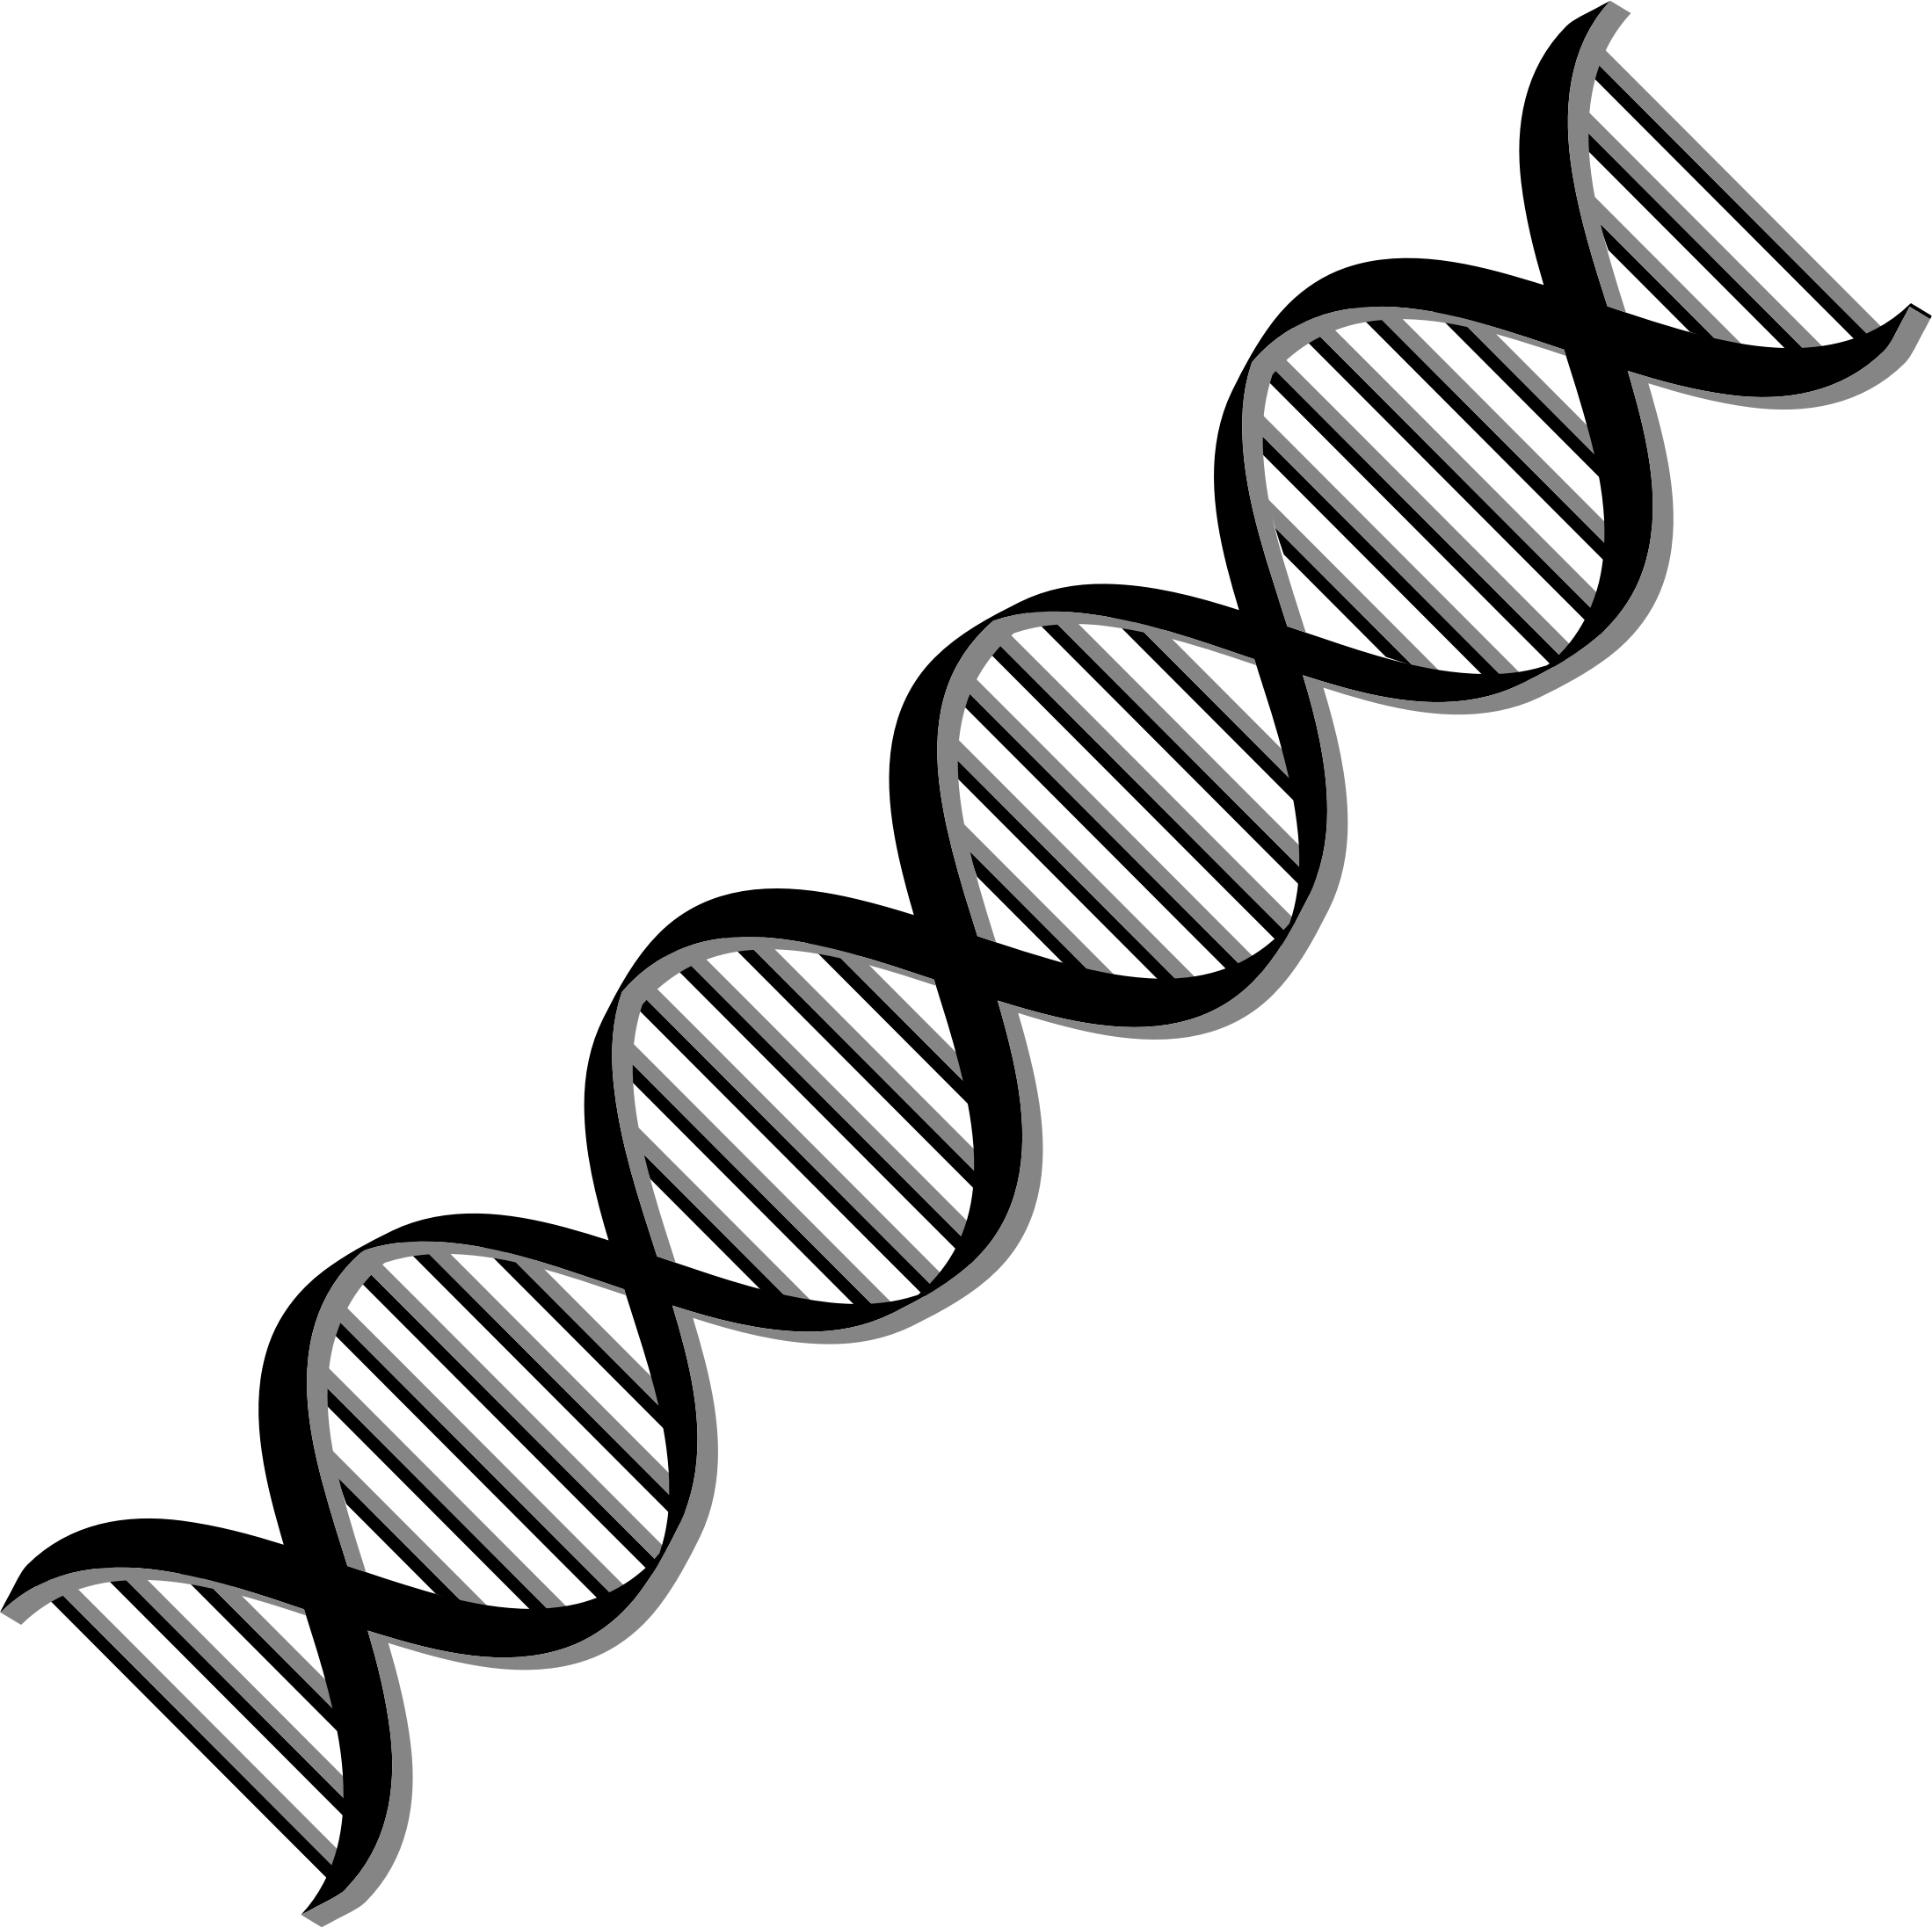 Dark and Dna Background